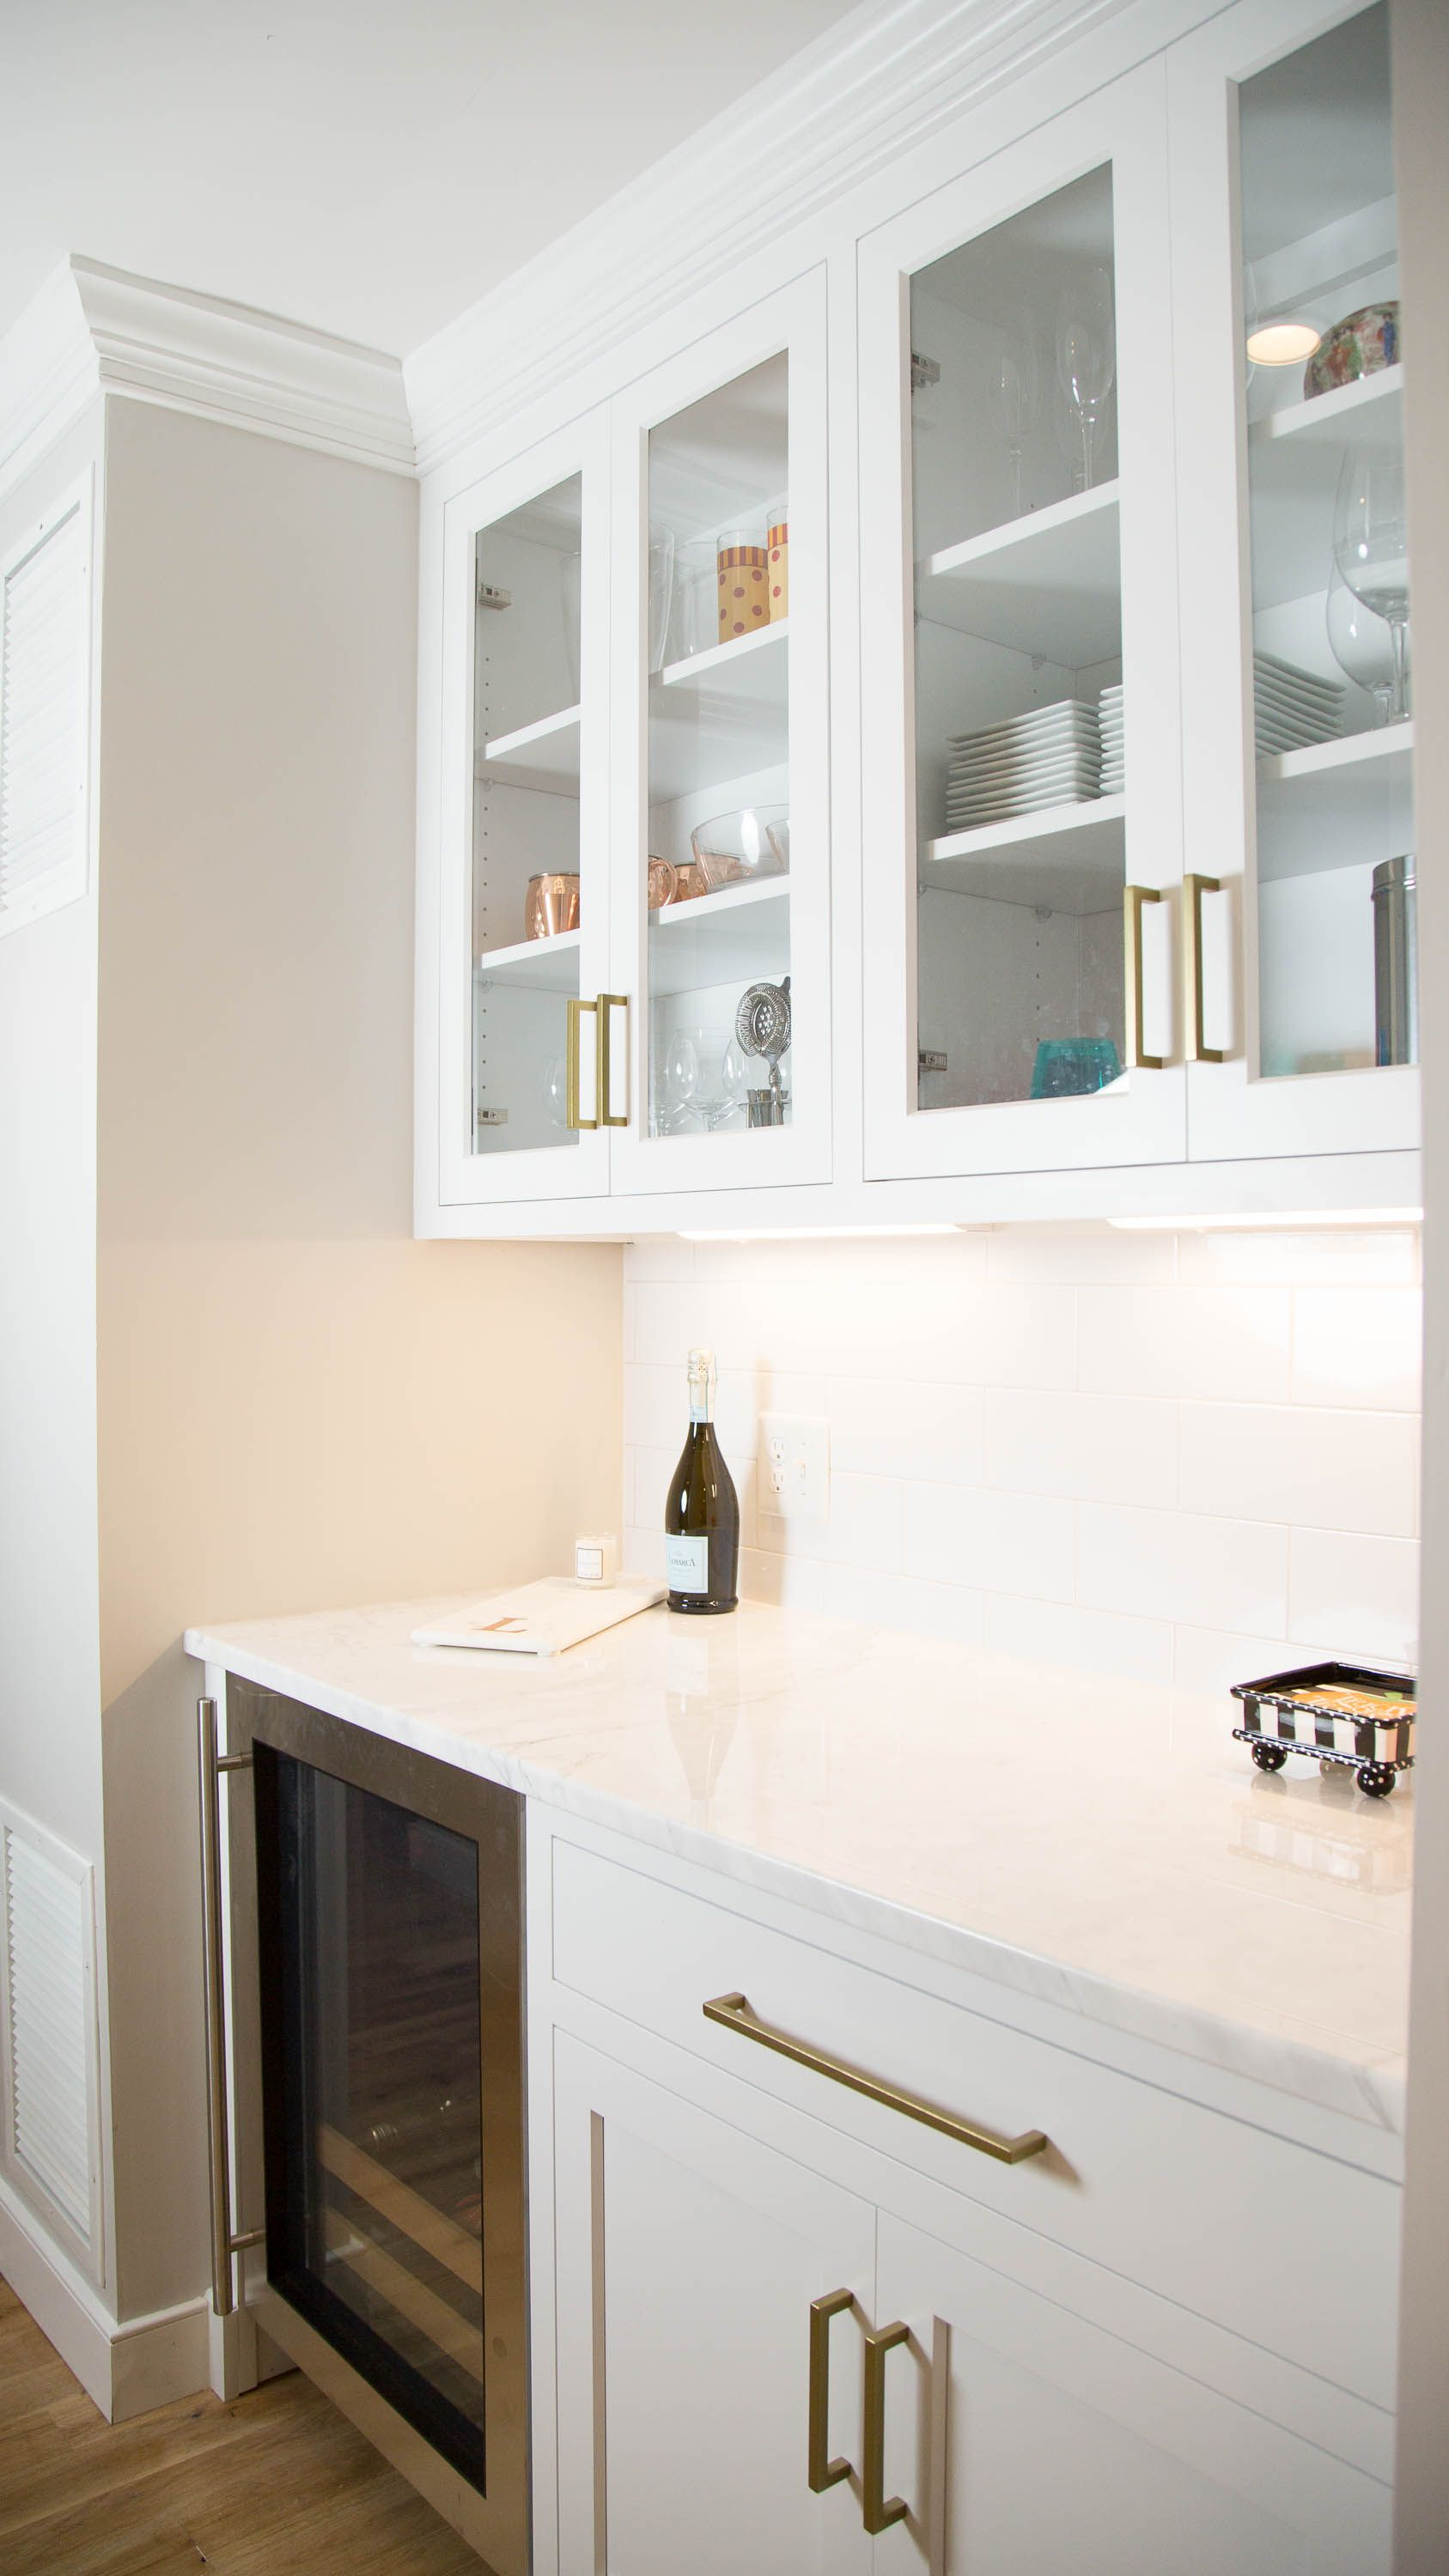 Follow The Link To See More Of This Beautiful Custom Kitchen On